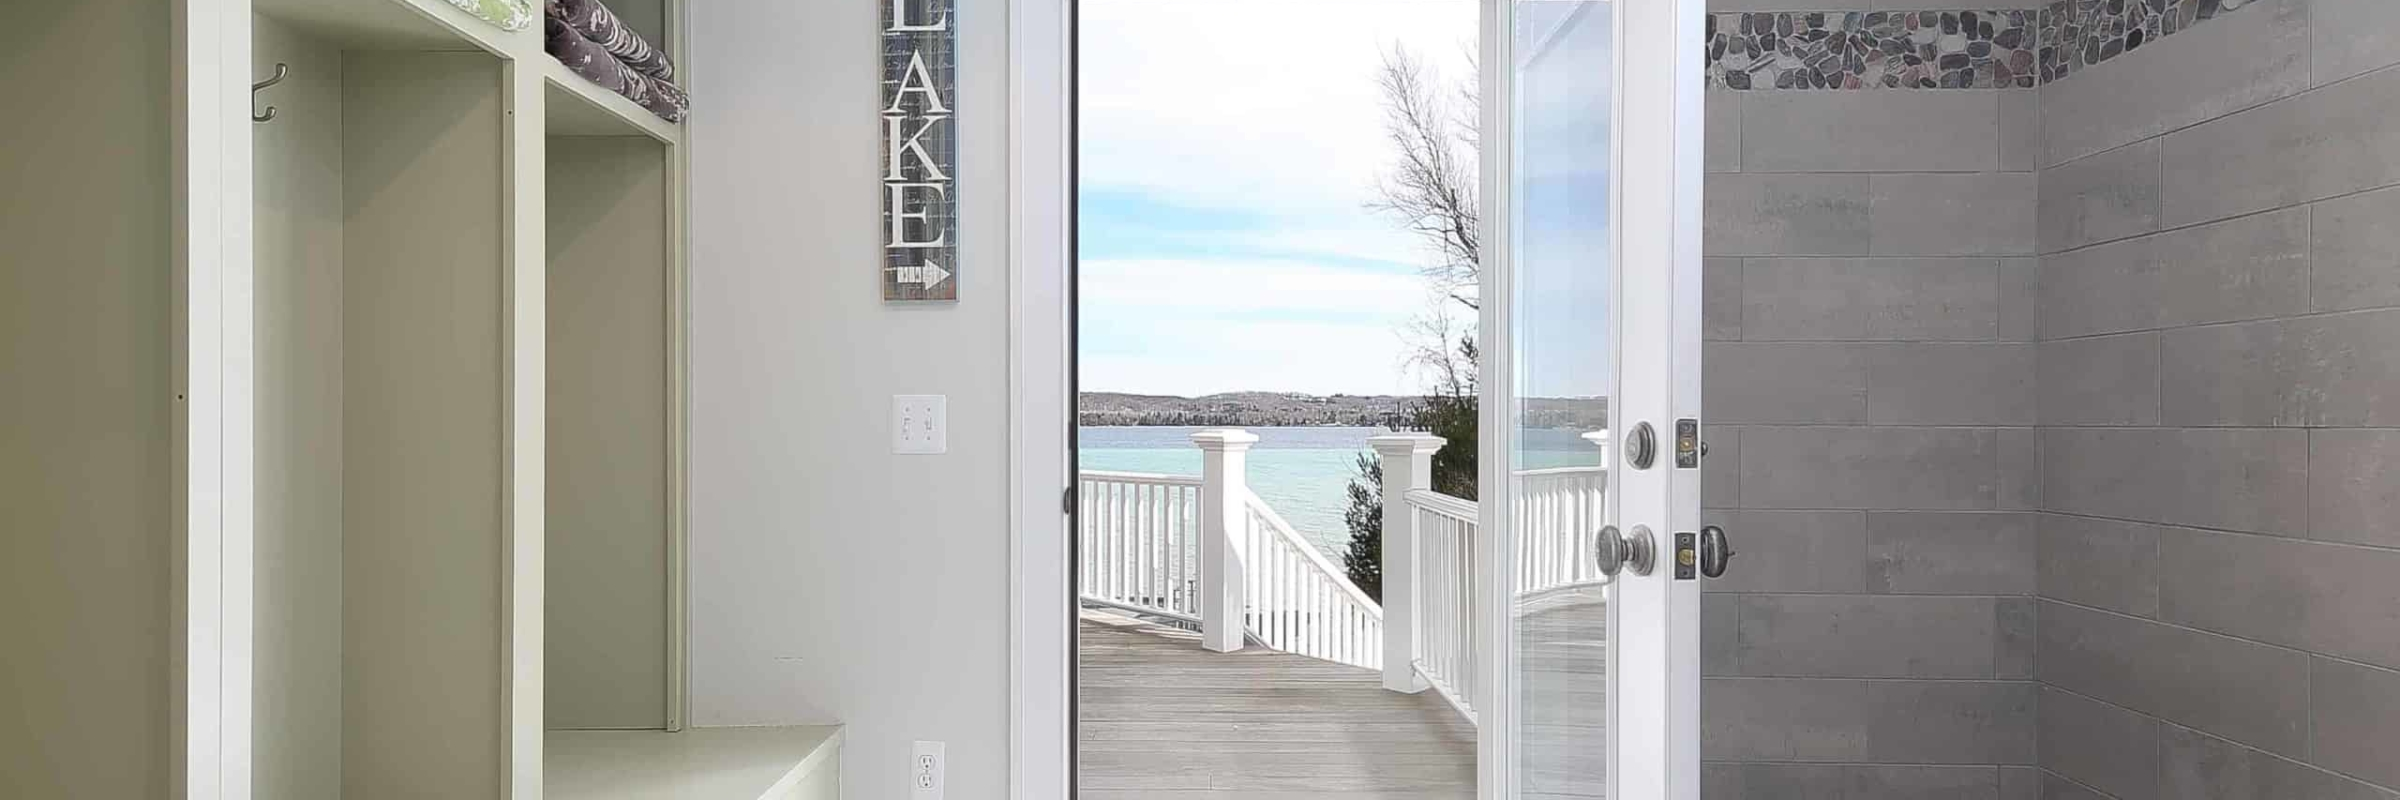 torch-lake-waterfront-homes-for-sale-mudroom-shower_1